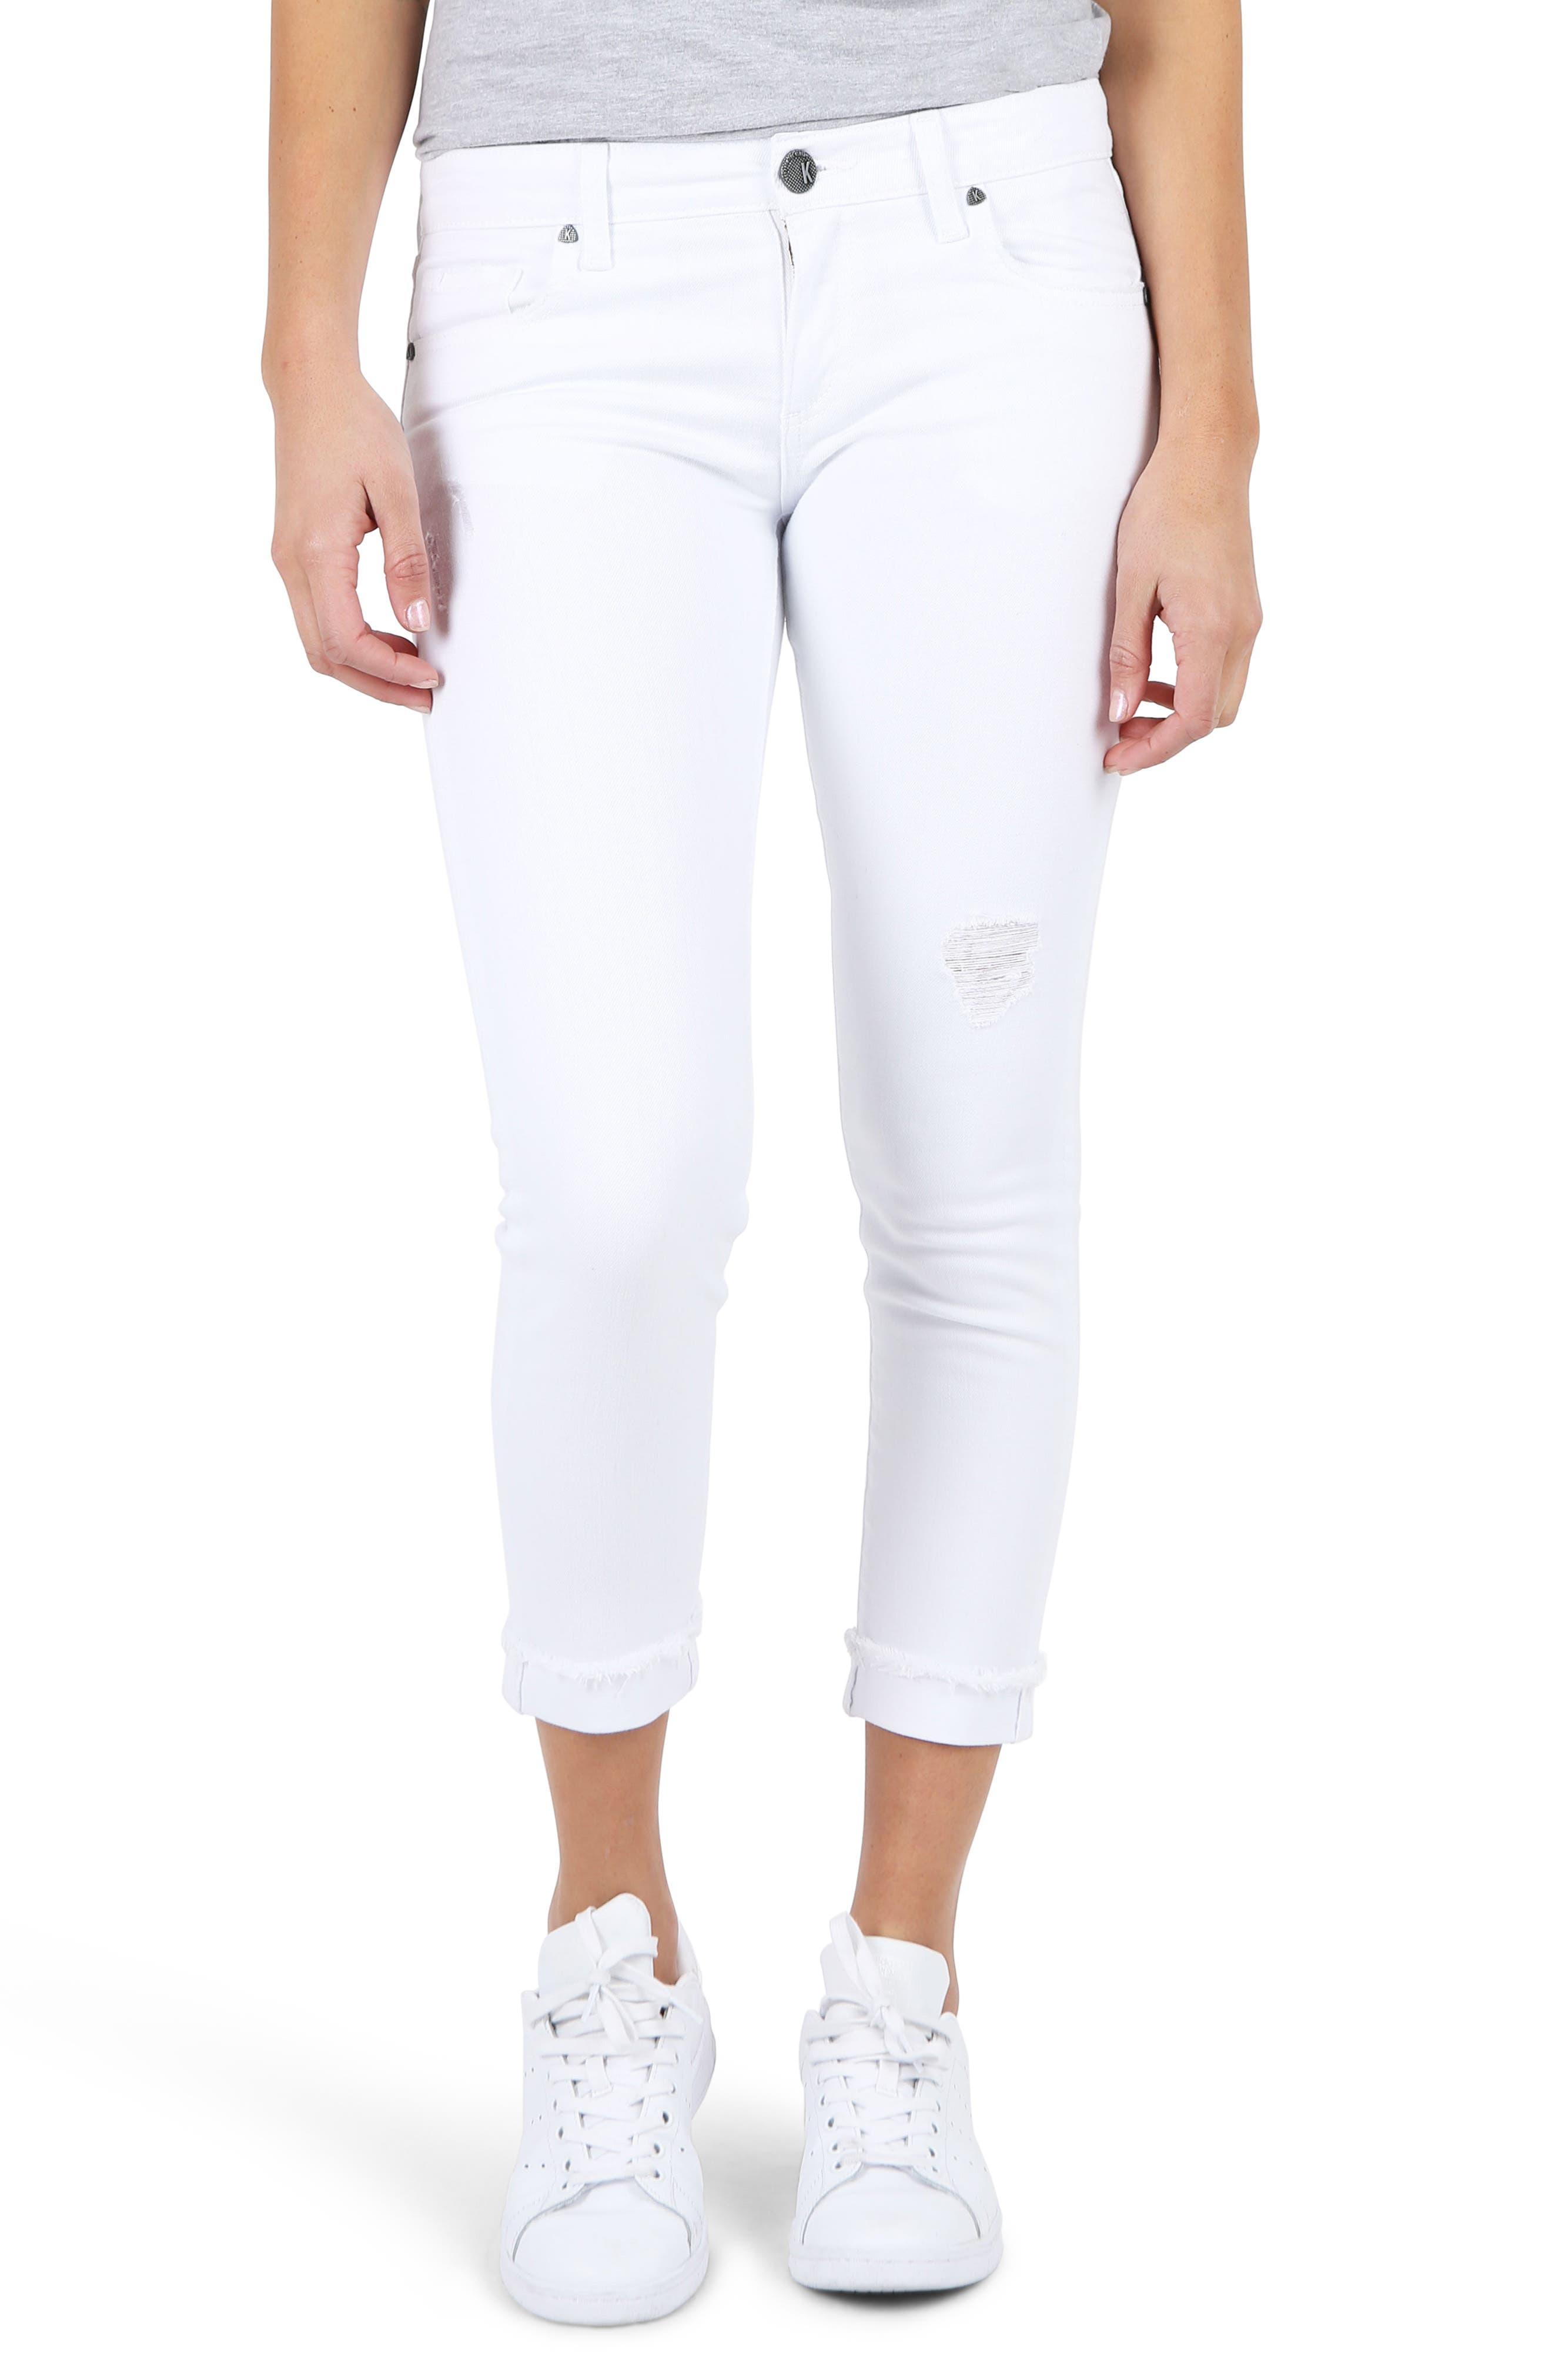 KUT Kollection Amy Crop White Jeans,                         Main,                         color, Optical White